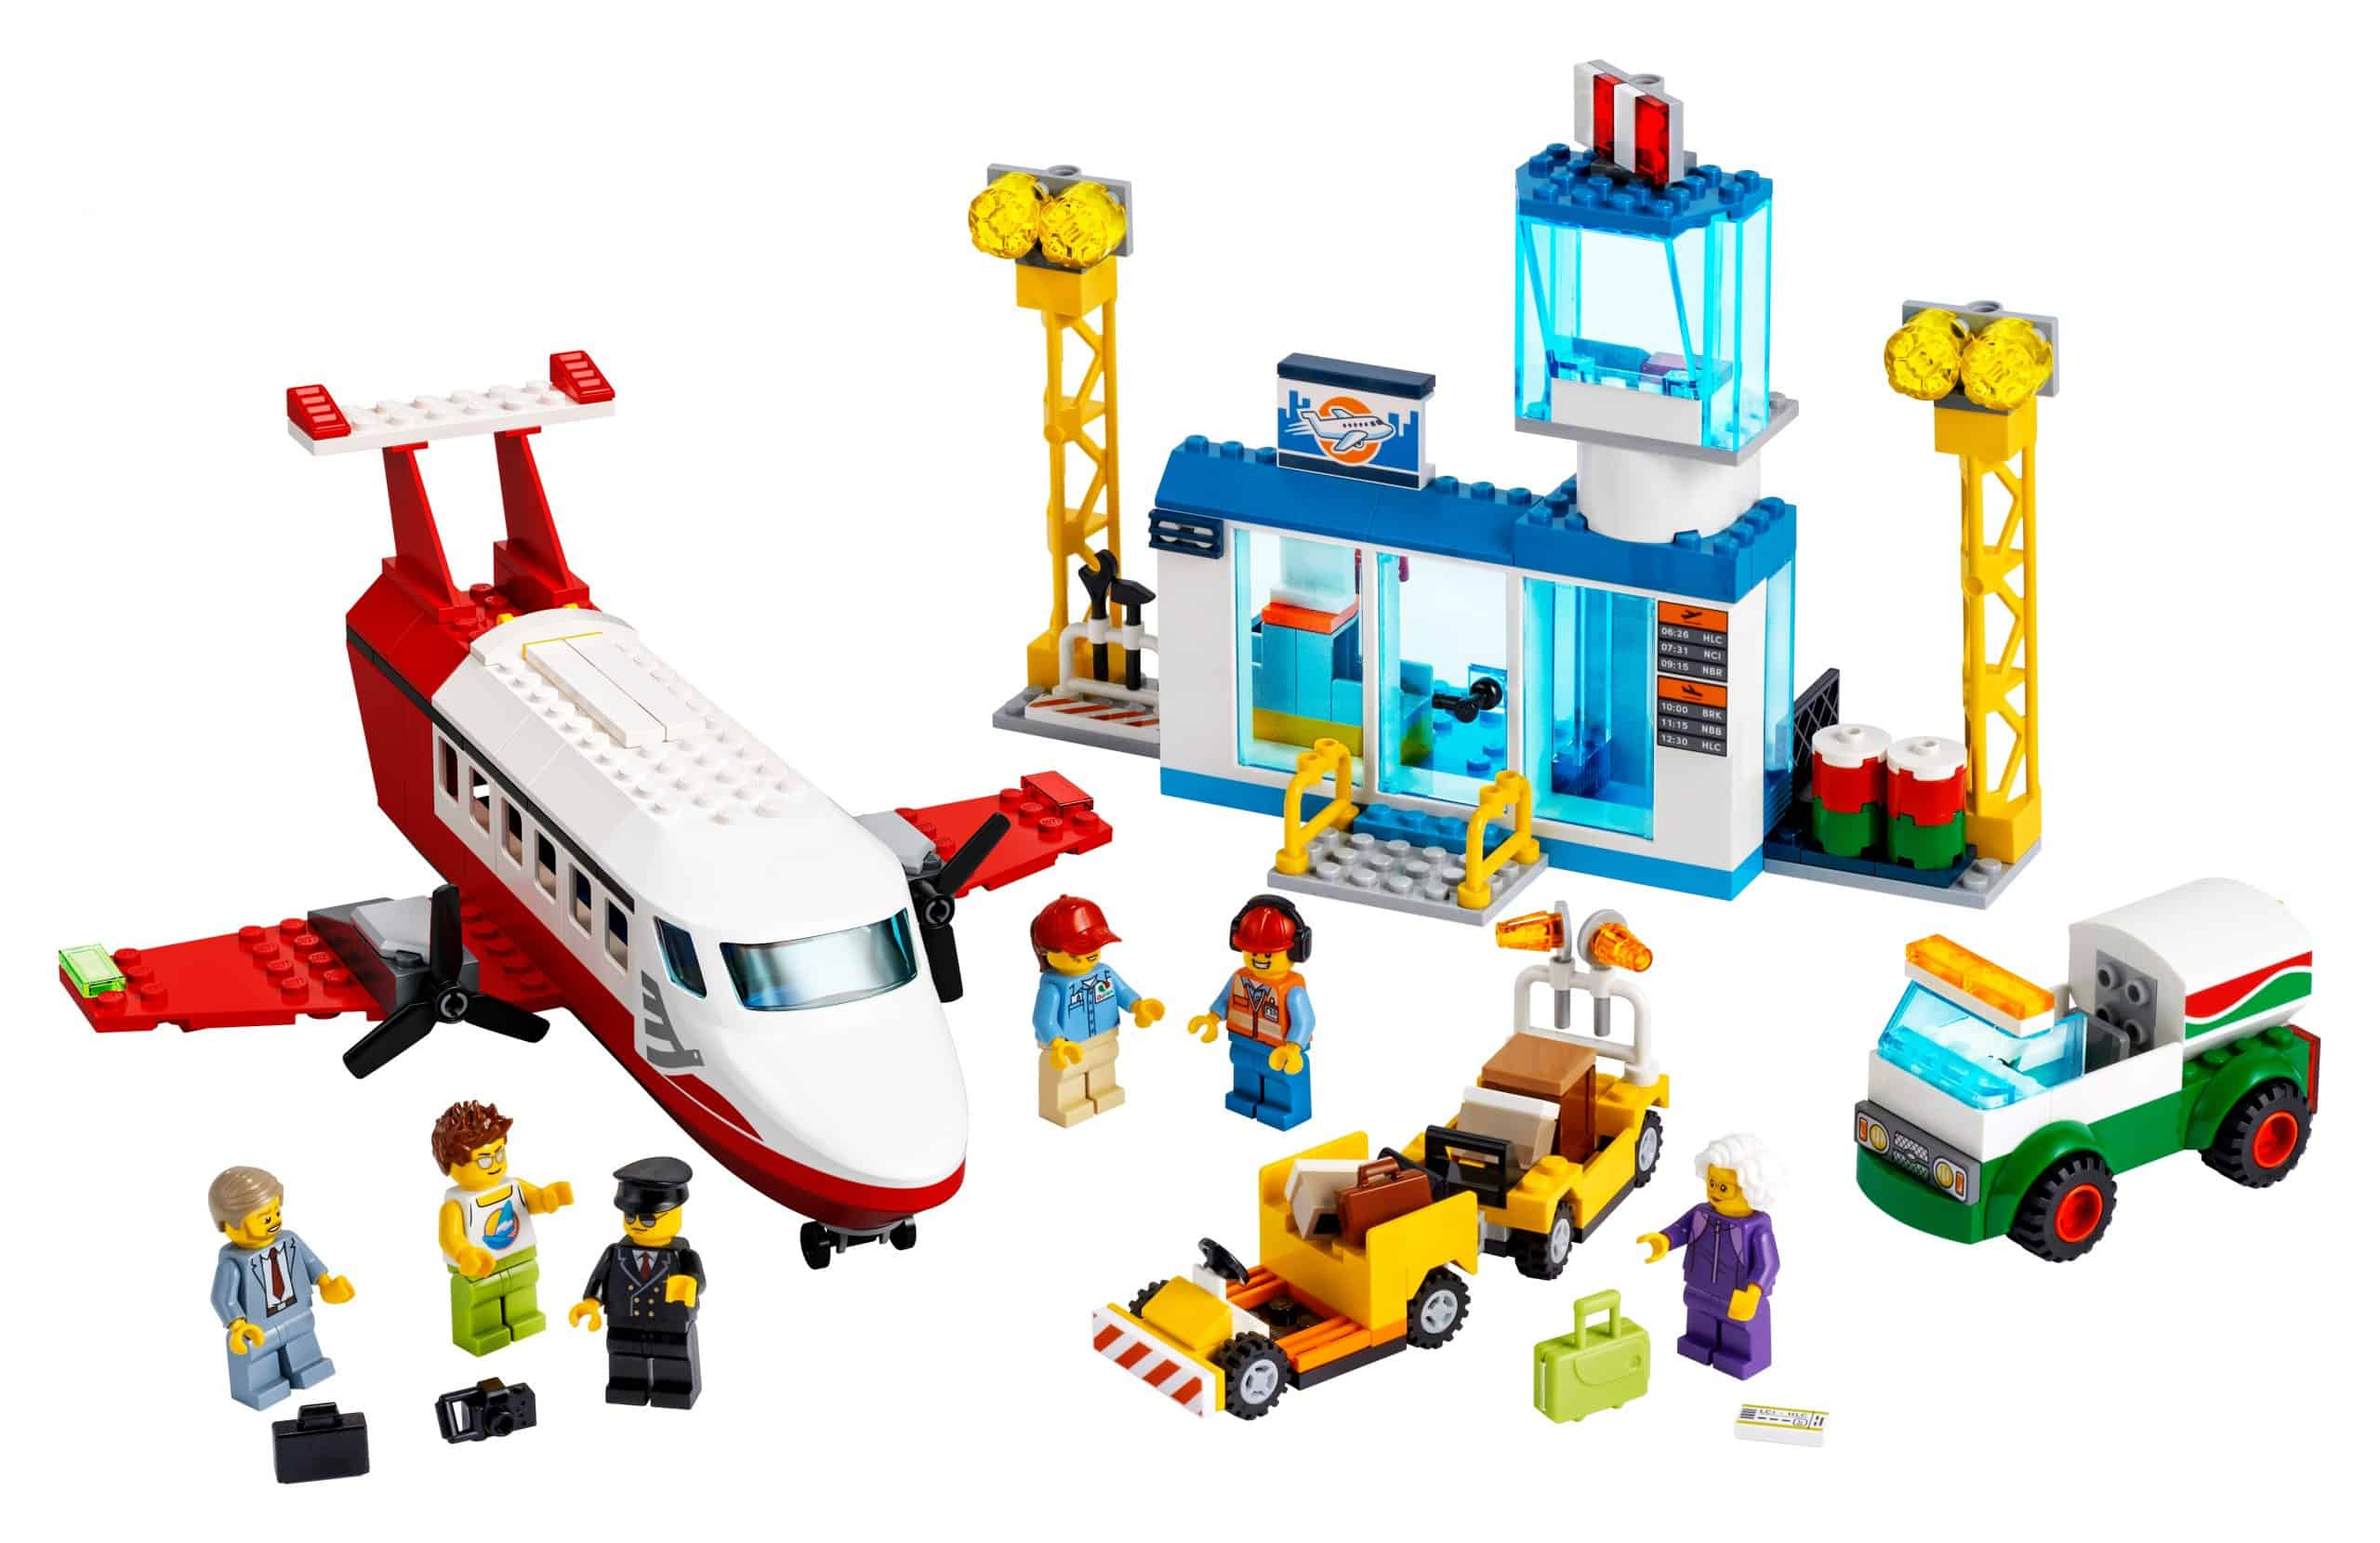 lego centrale luchthaven 60261 scaled